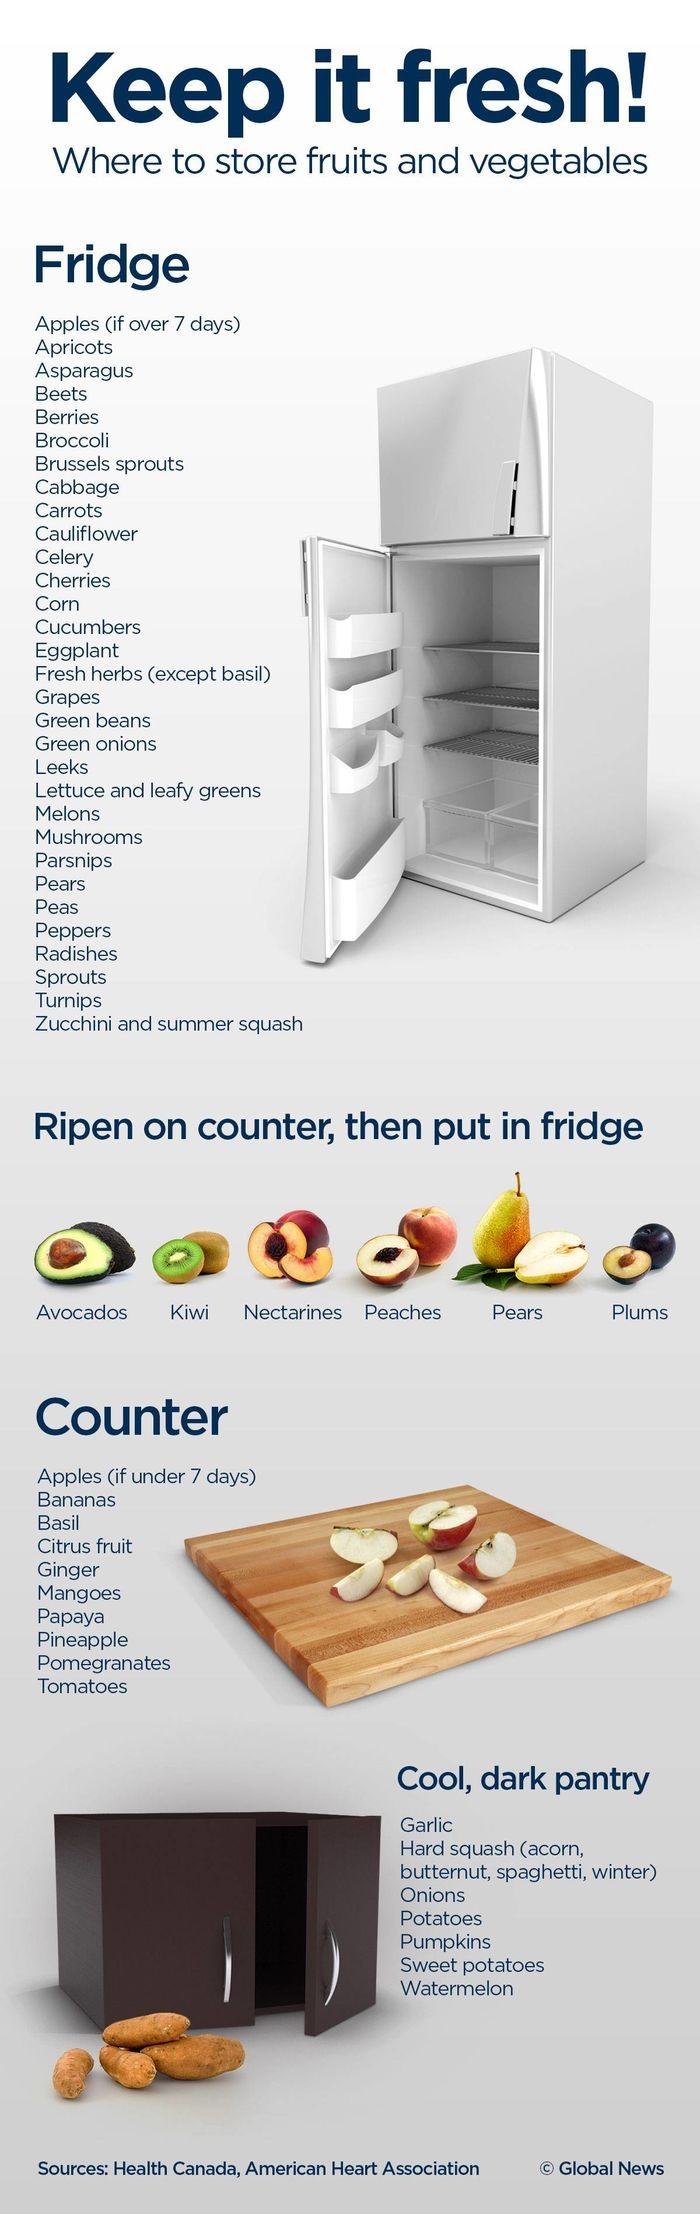 How To Store Food To Keep It Fresh Healthy Listly List Healthy Fridge Food Store Fresh Food